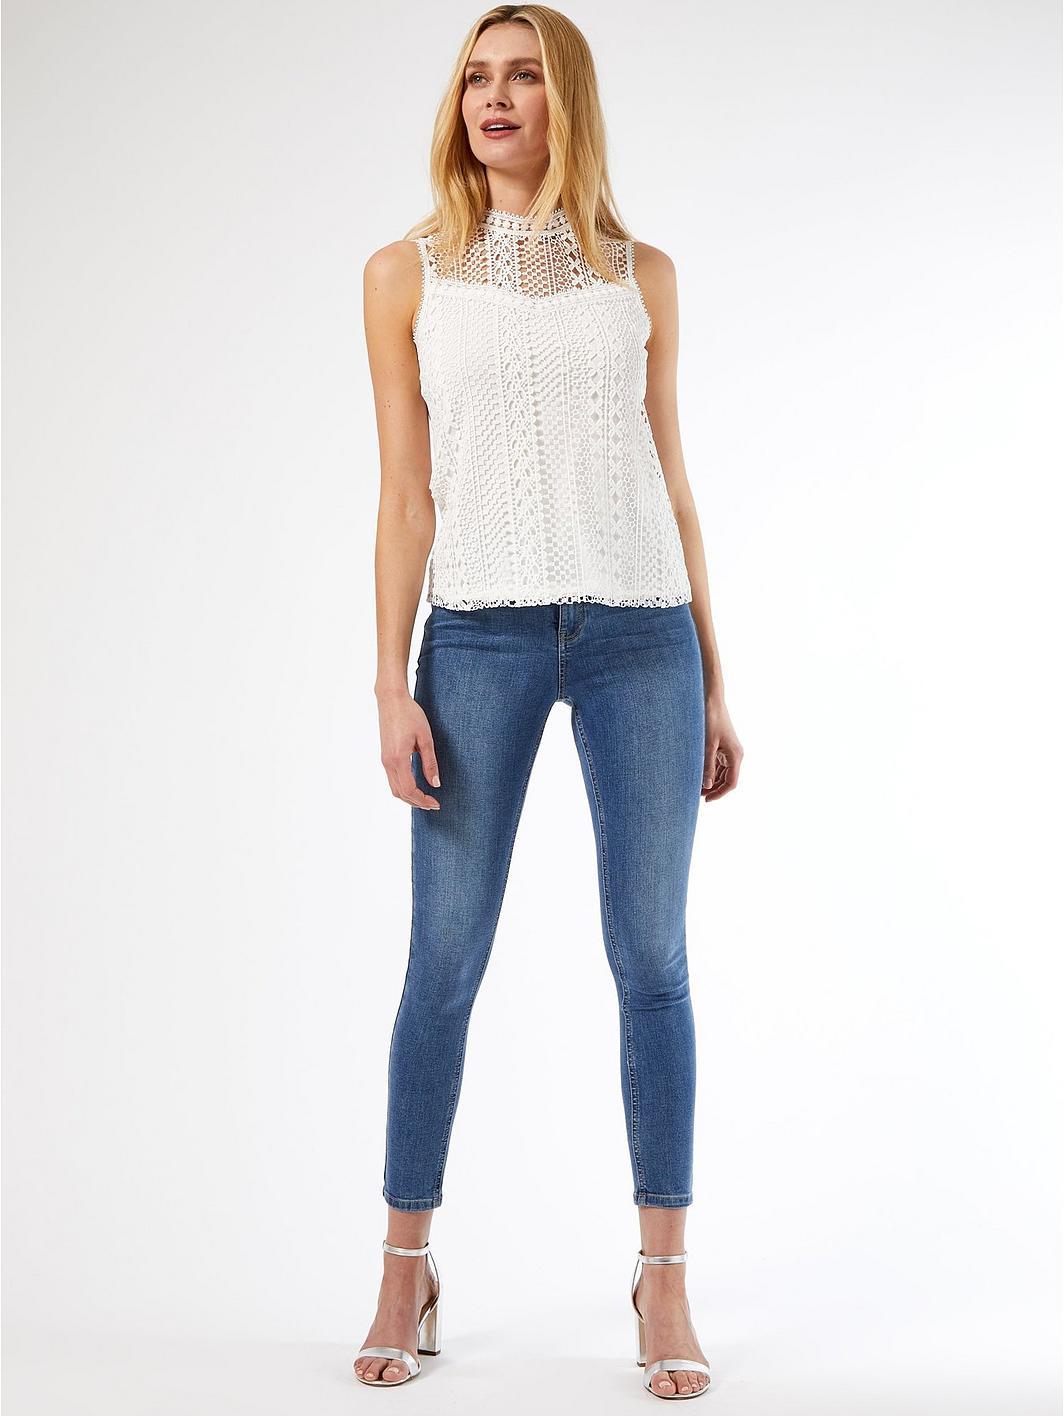 Dorothy Perkins White Geo Lace Shell Top dECXtM